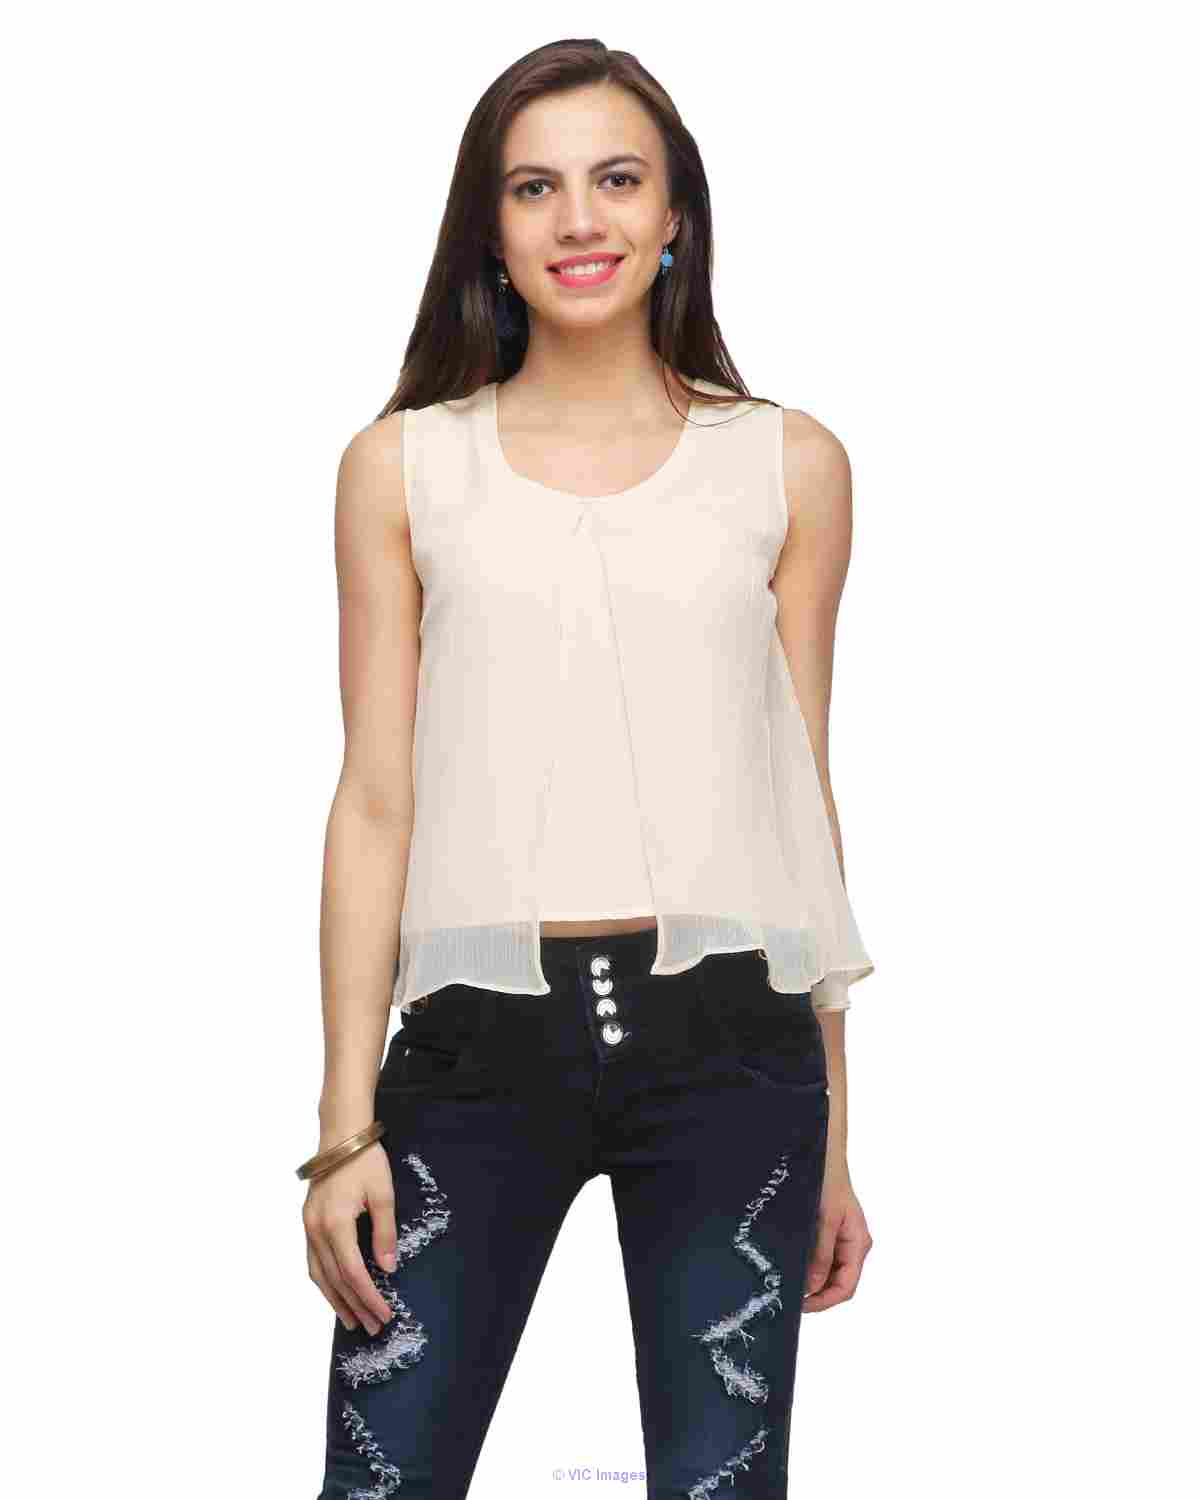 Beige Tops - Buy Beige Tops online in India at Shoppyzip ottawa